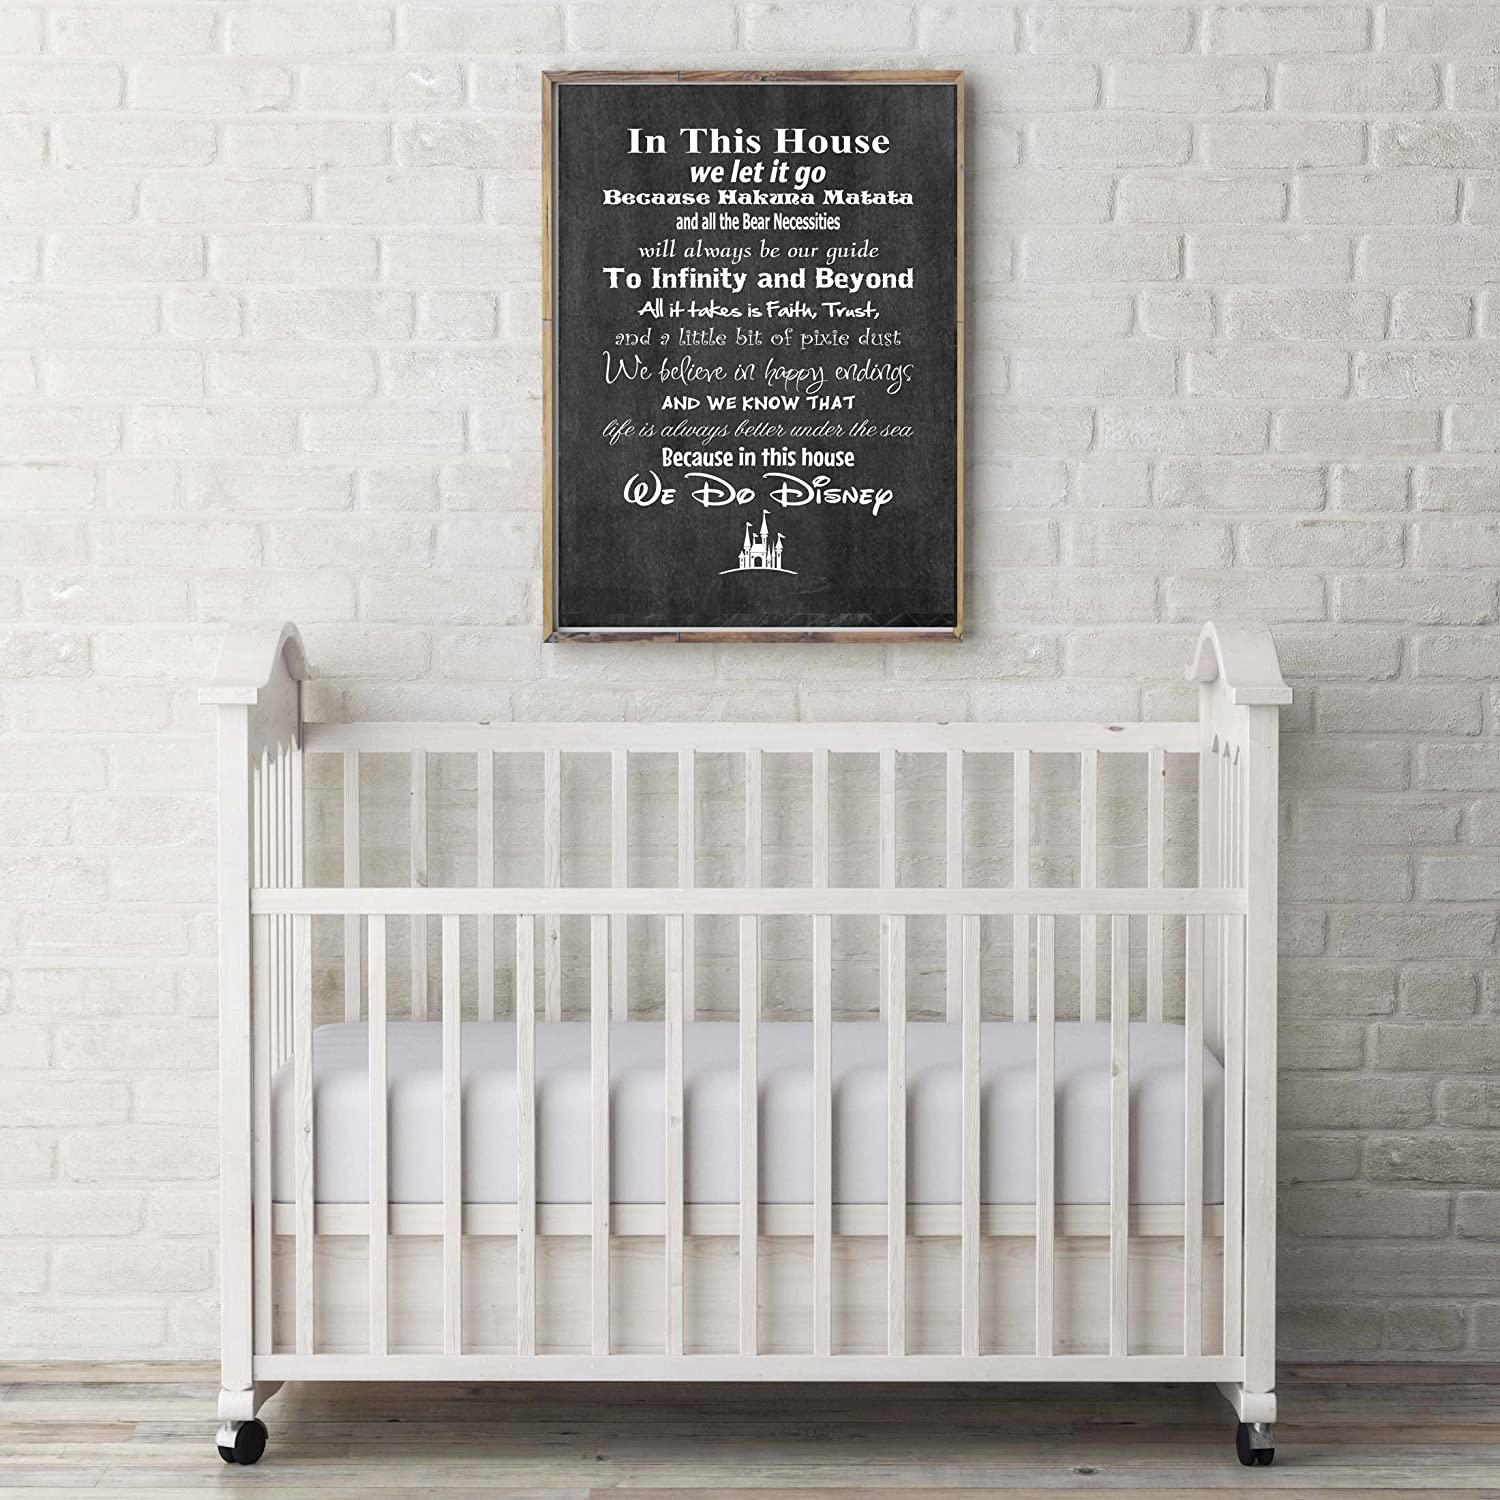 Frame not included In This House We Do Disney 8x10, Chalkboard Background Disney Family House Rules Poster Print Photo Quality Ready to Frame Made in USA